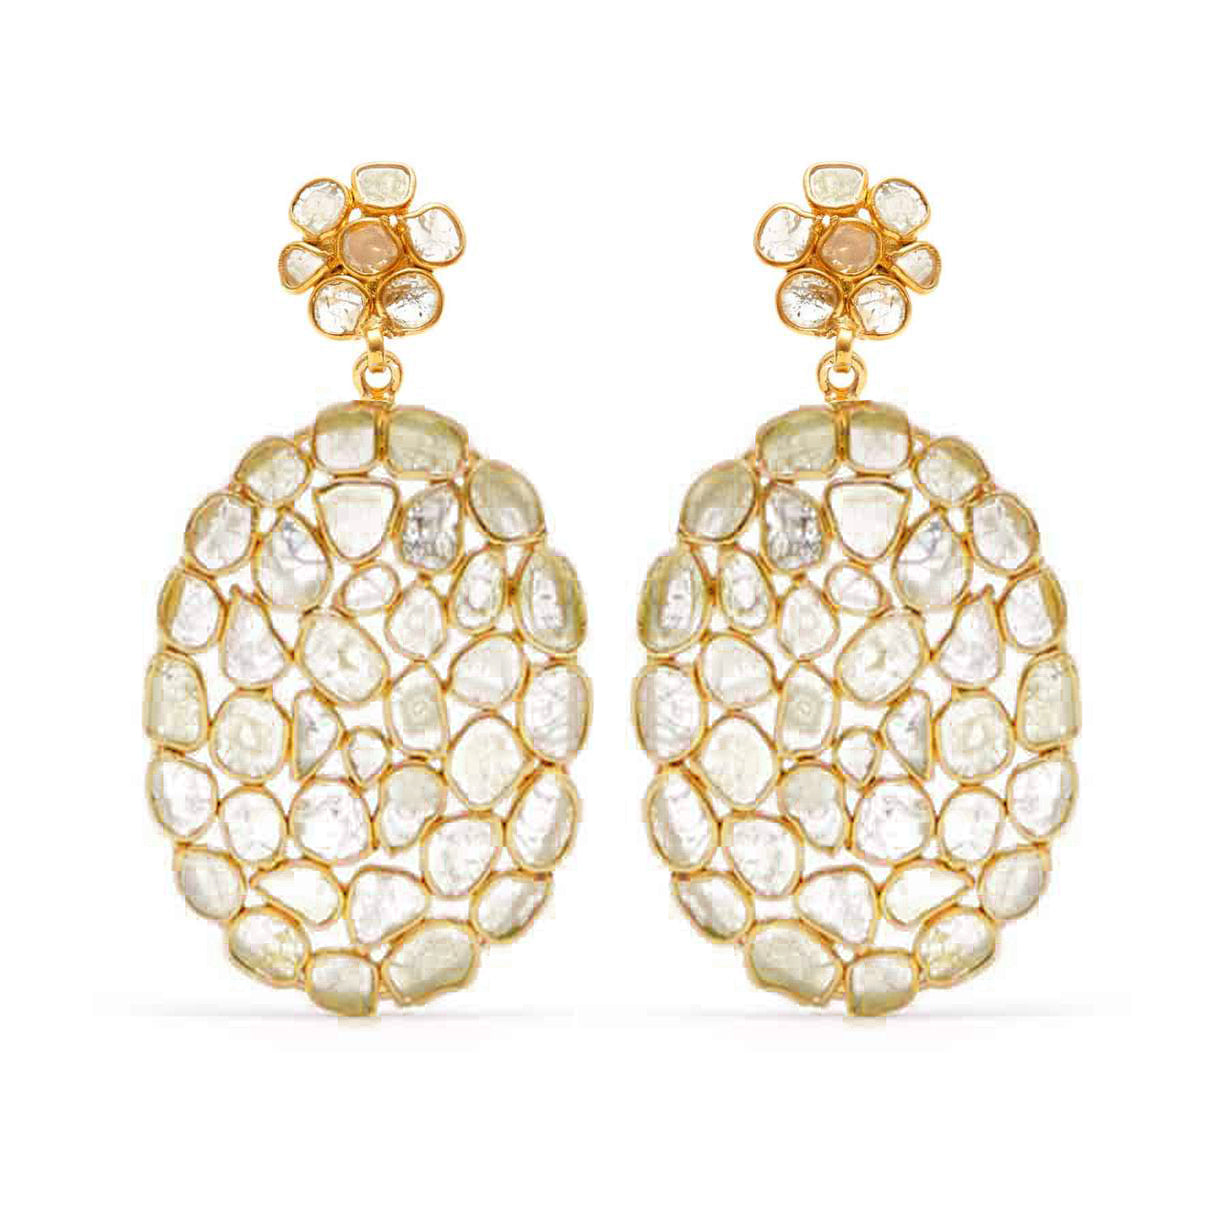 Golden Diamond Diaphanous Oval Drop Earrings